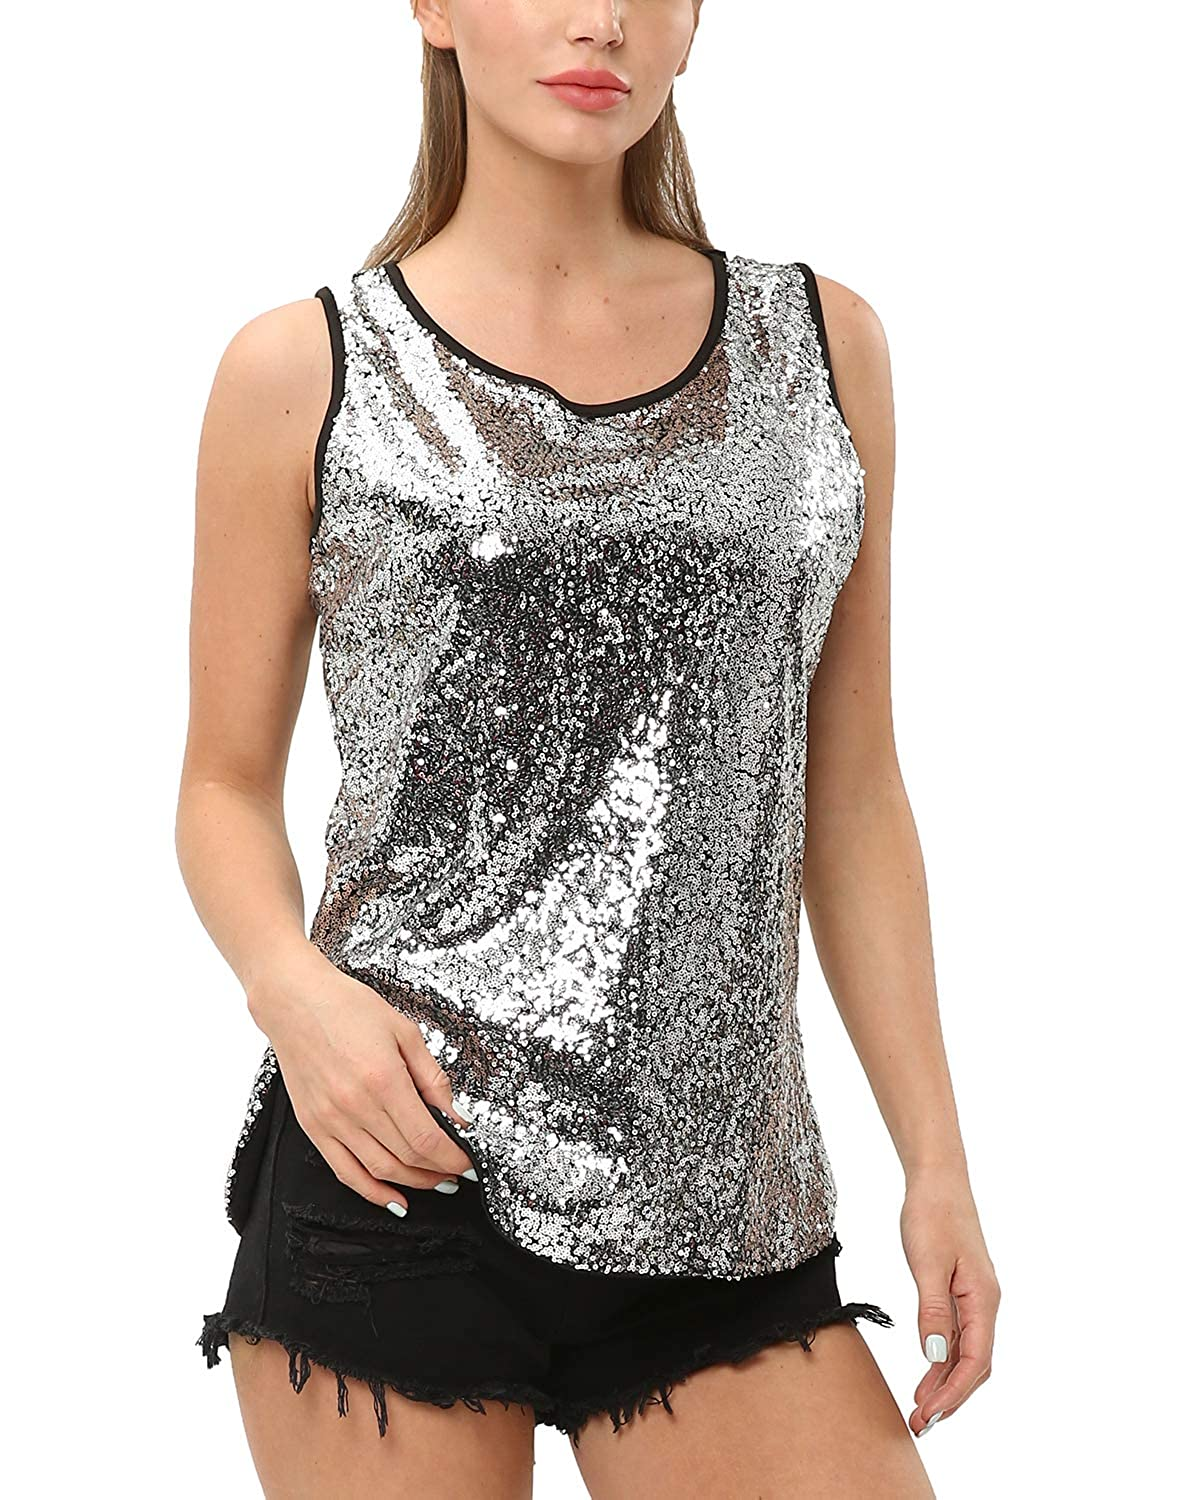 KENANCY Womens Sleeveless Sparkle Shimmer Camisole Vest Sequin Tank Tops